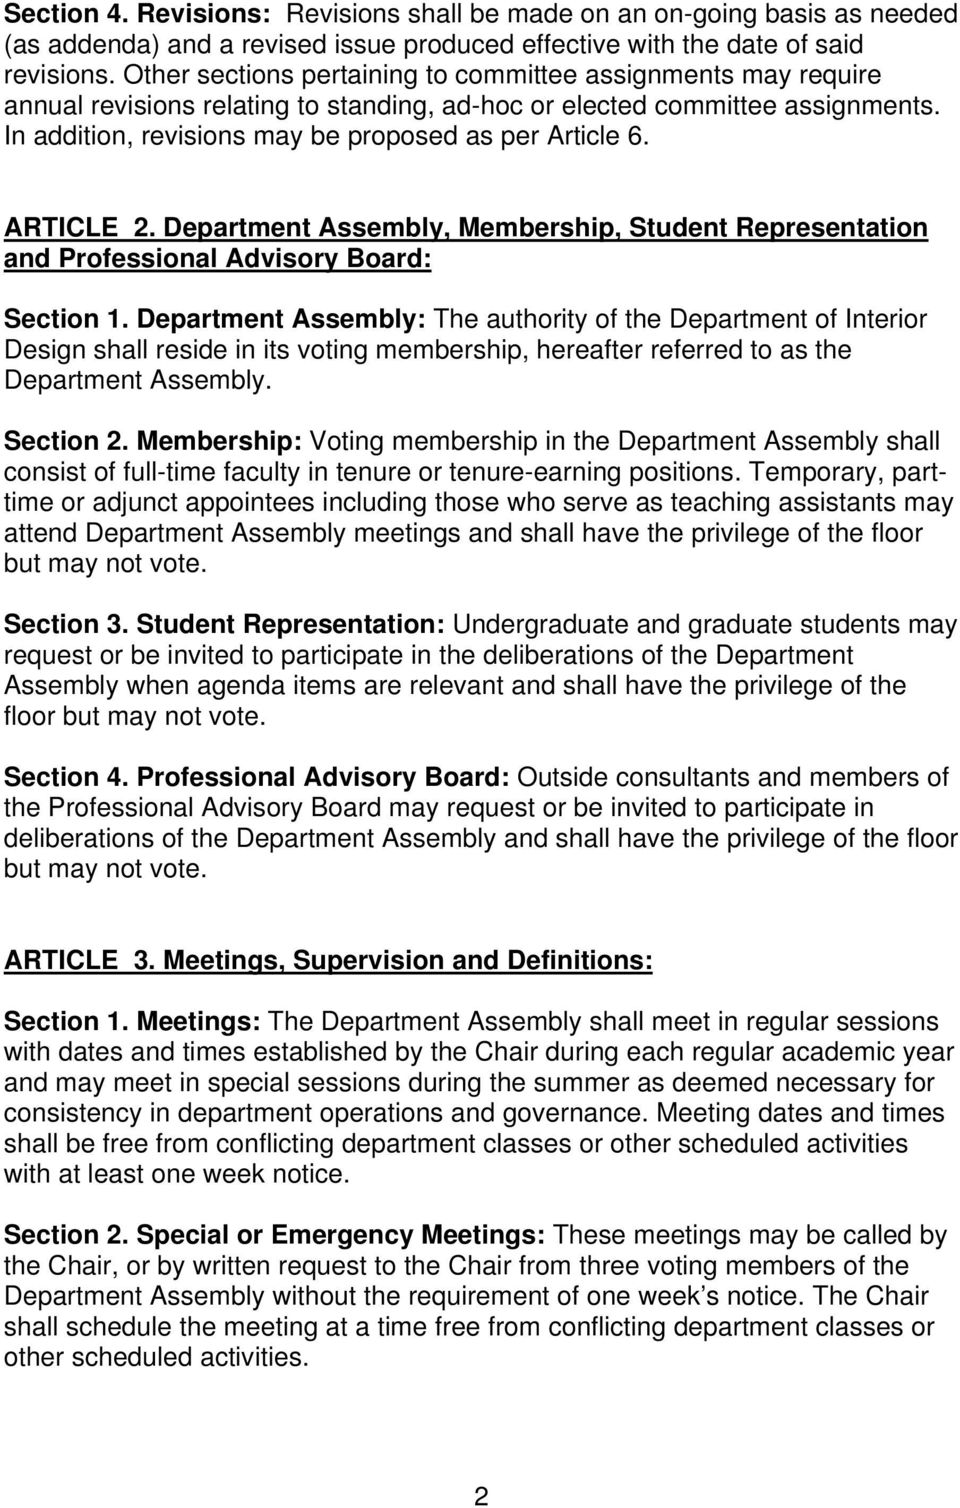 ARTICLE 2. Department Assembly, Membership, Student Representation and Professional Advisory Board: Section 1.